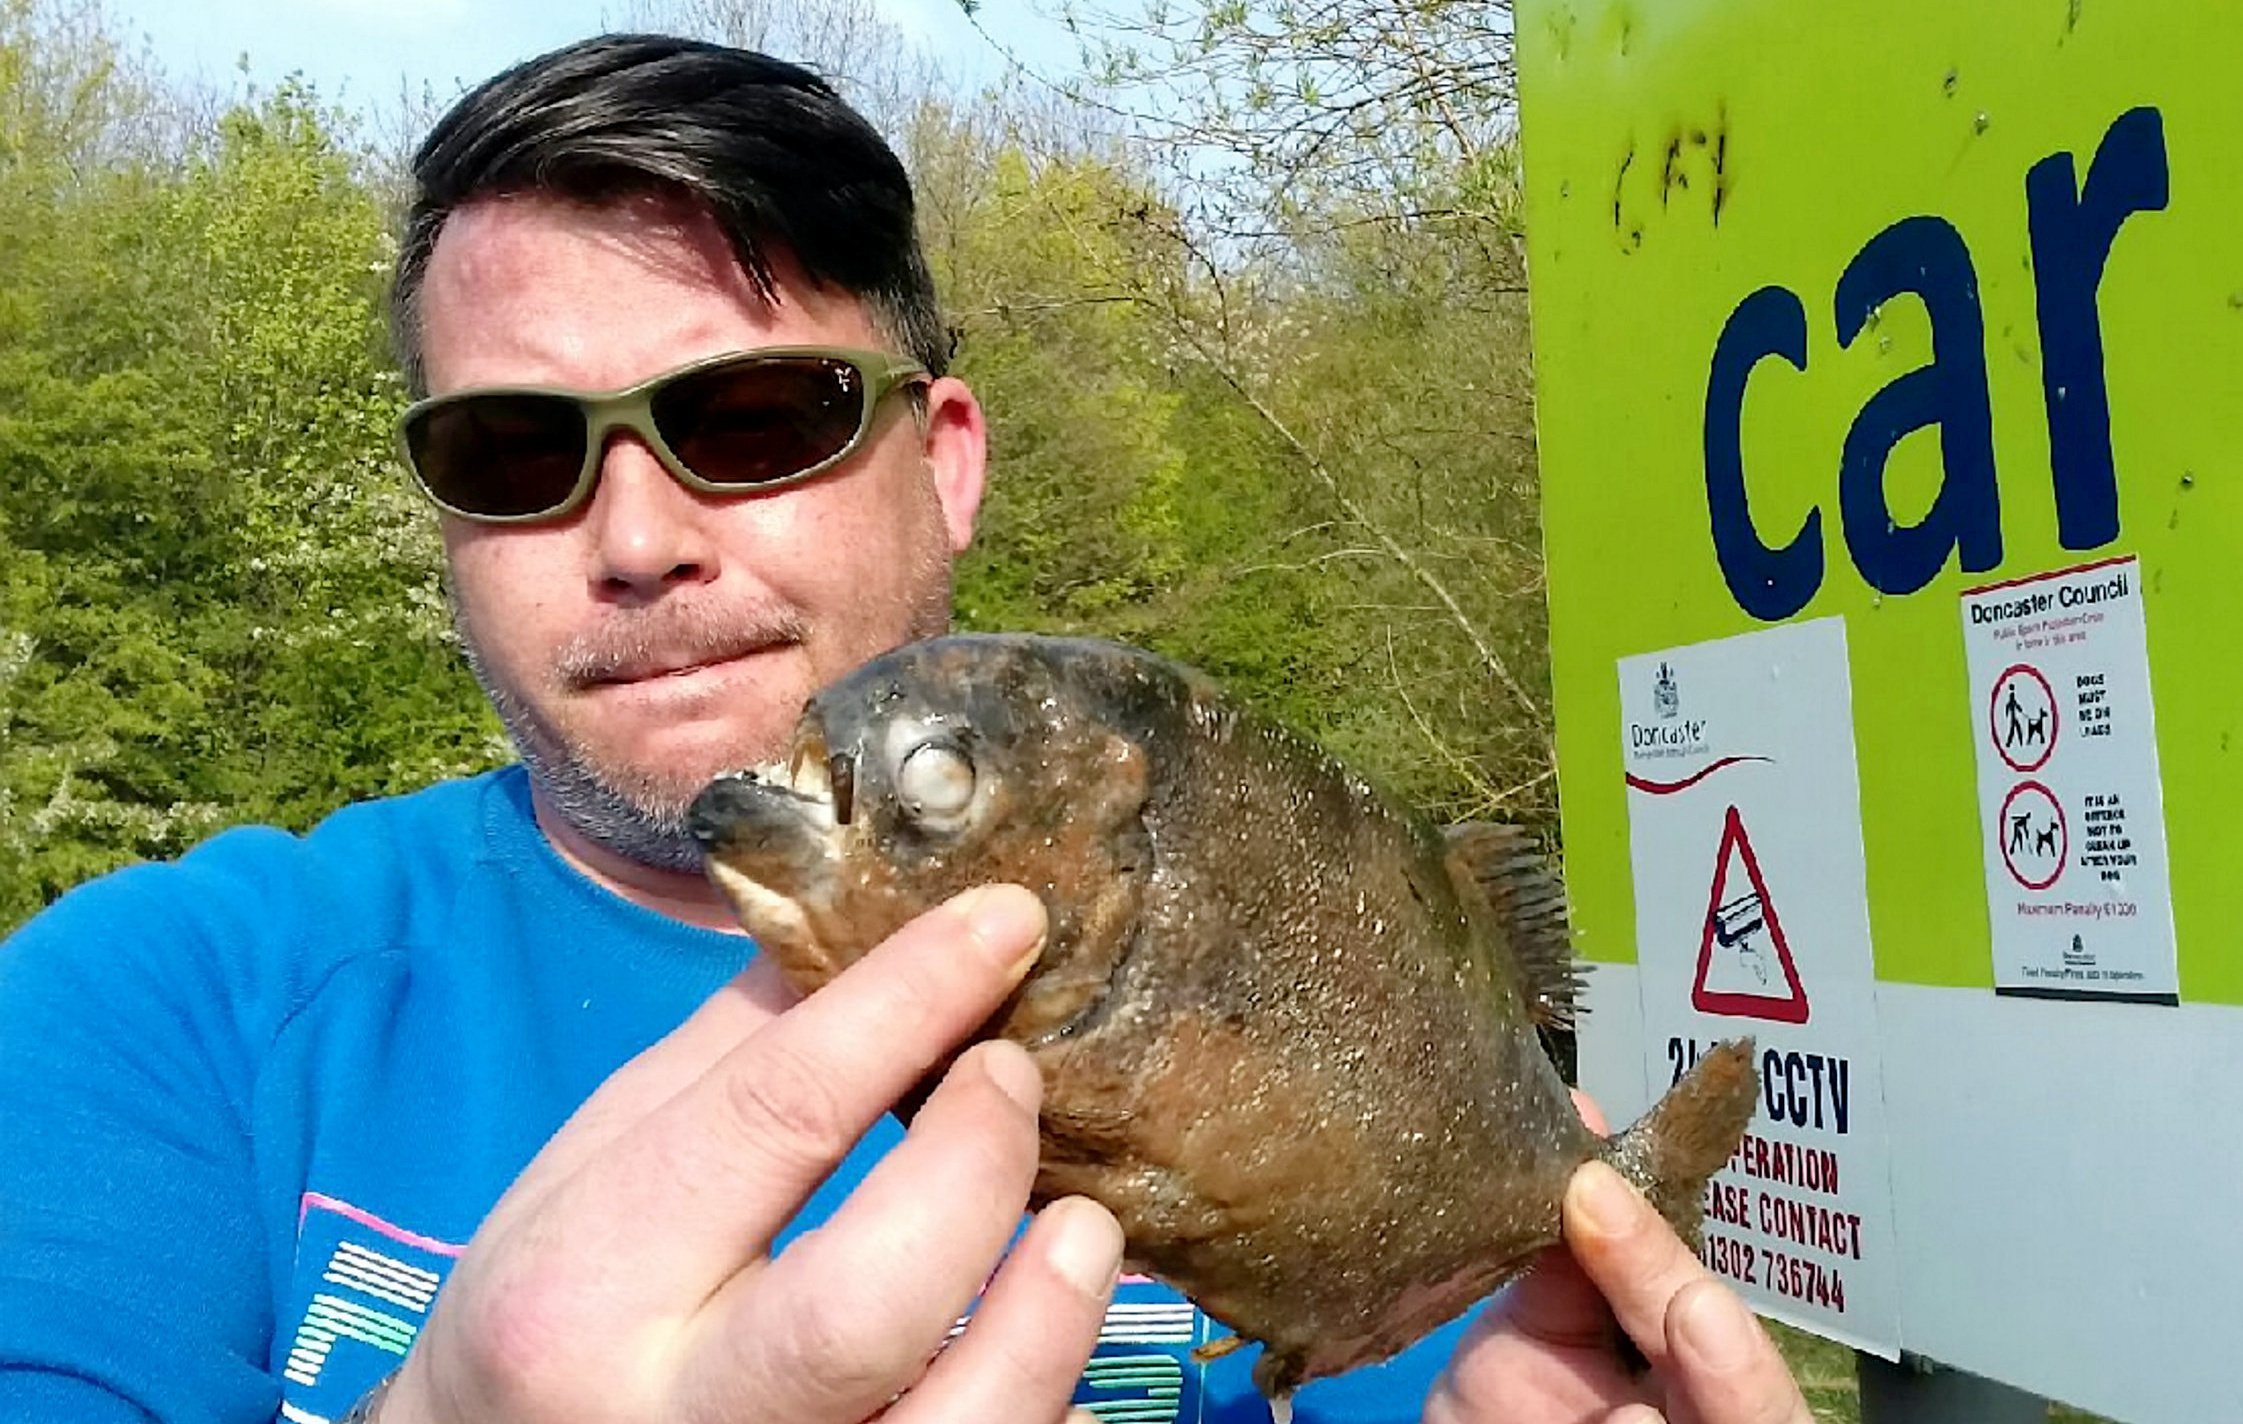 Davey White with the Piranha. Stunned fishermen have found two deadly PIRANHAS in a Yorkshire lake - where a number of ducks have vanished. See SWNS story SWLEpiranha. The carnivorous fish with rows of sharp teeth - which normally stalk the waters of the Amazon - were both discovered in the water in Doncaster. Locals at the beauty spot have say they noticed a reduced number of ducks and fish at the lake - and think the flesh-eating fish could be responsible.